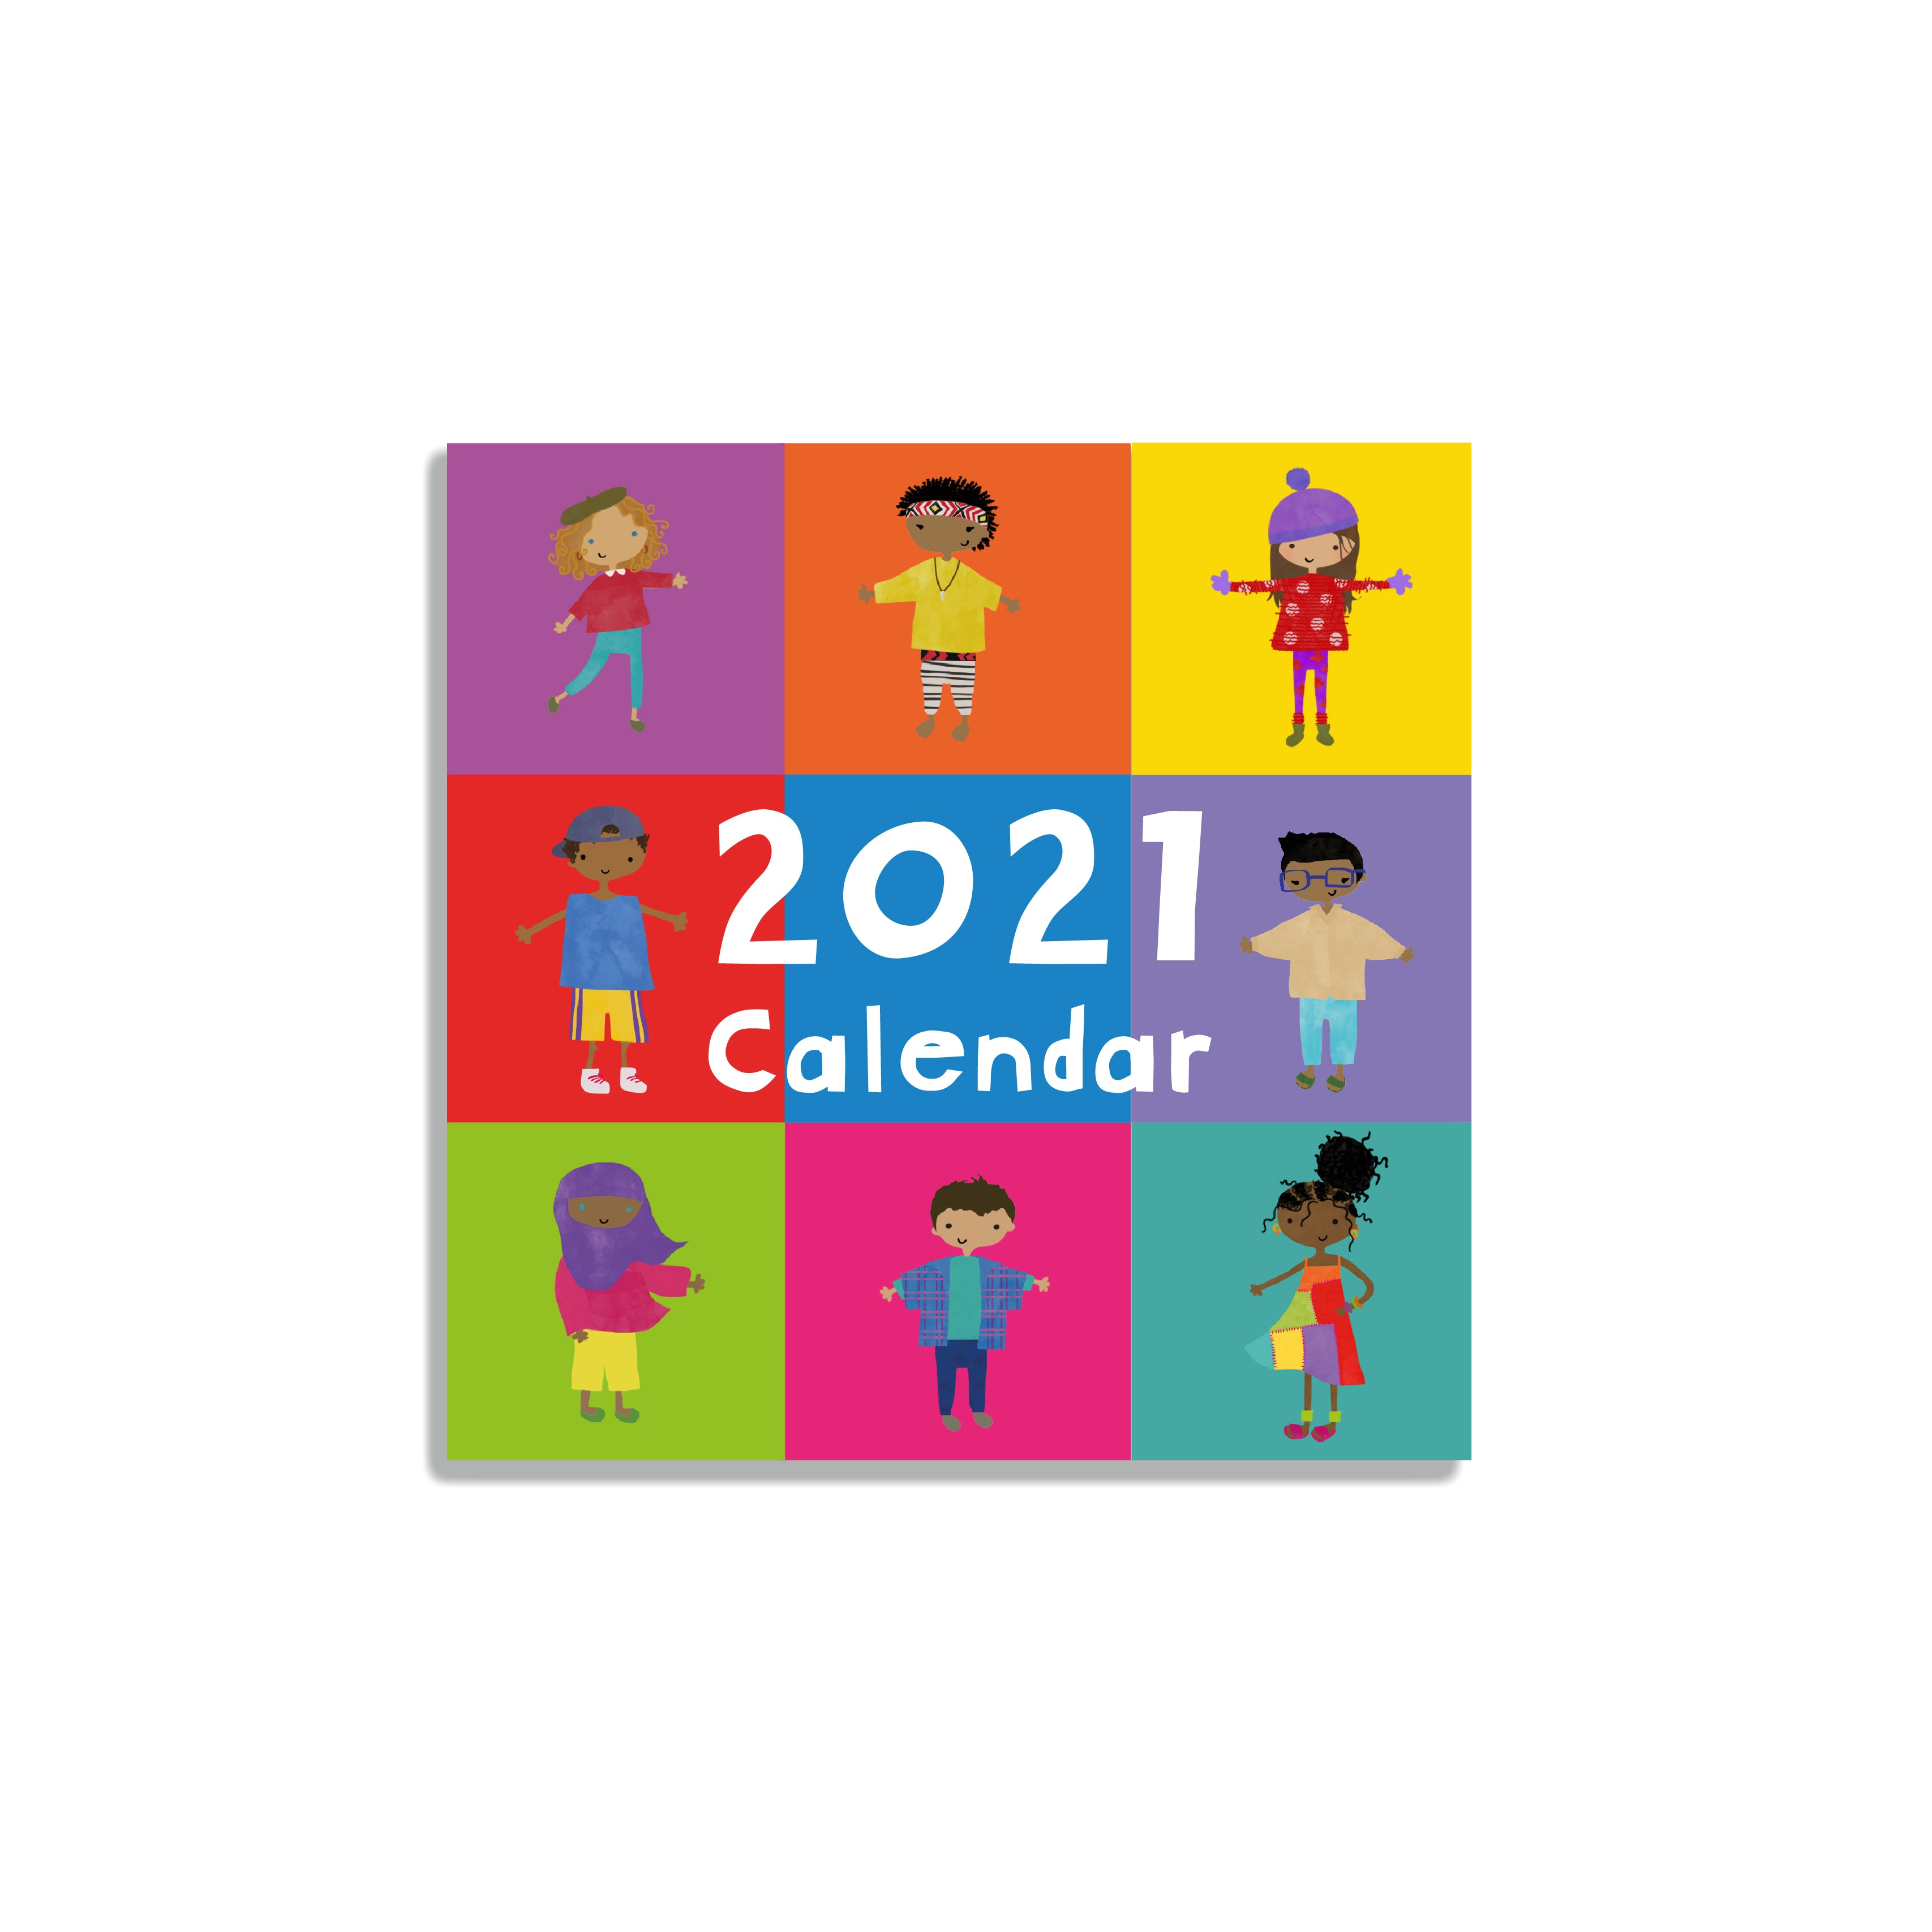 The Book of Cultures & the 2021 calendar